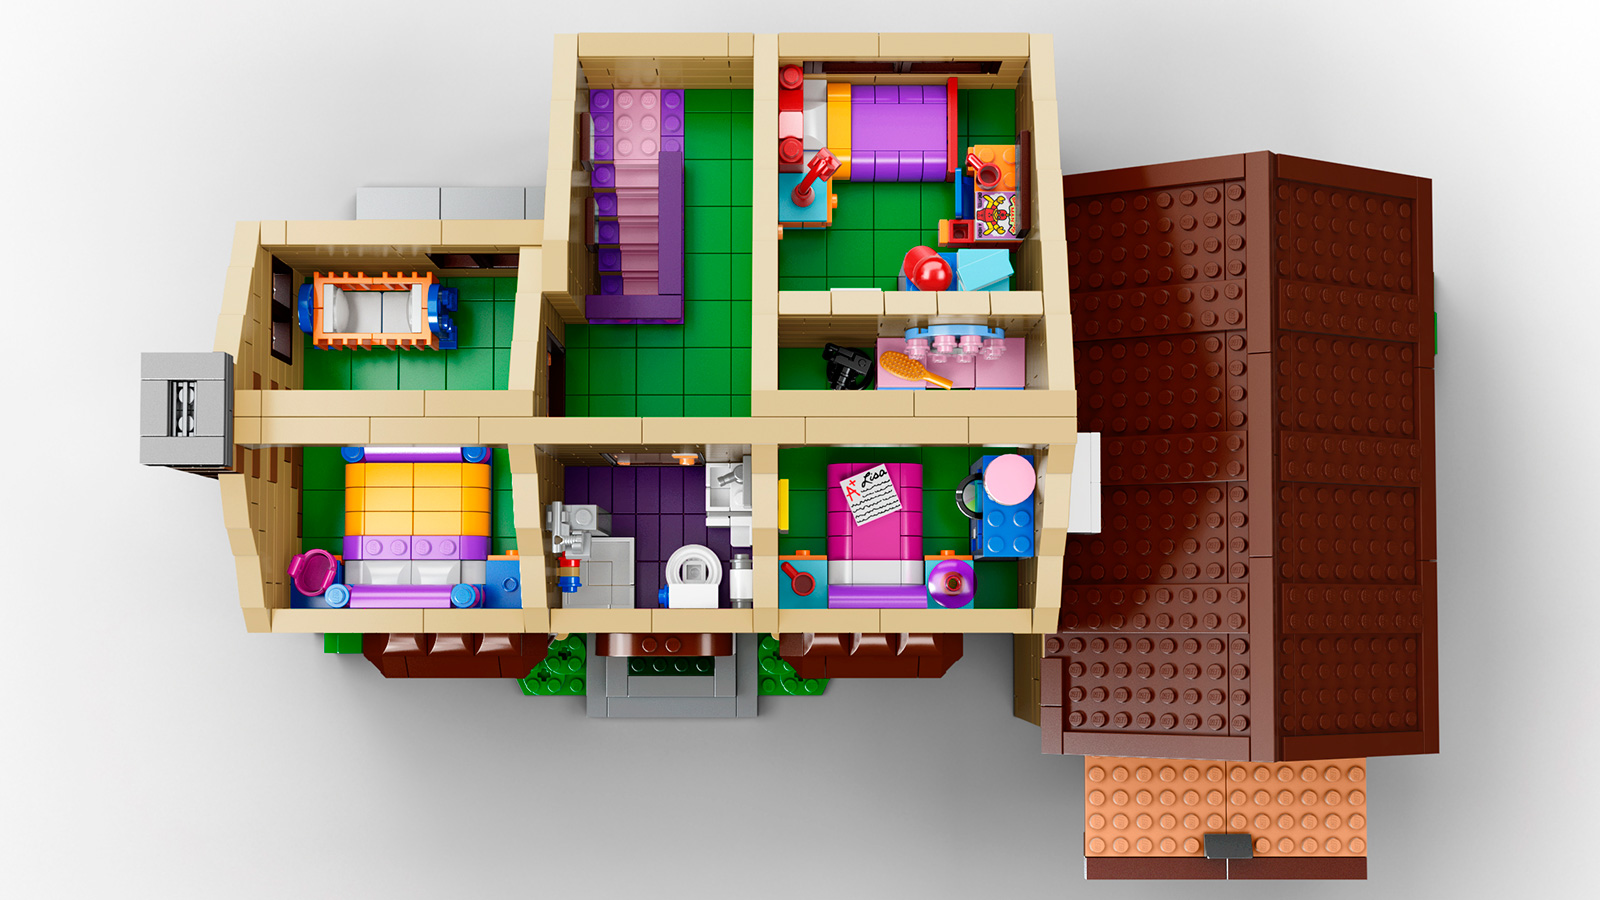 Lego Simpsons House 2 Pictures to pin on Pinterest